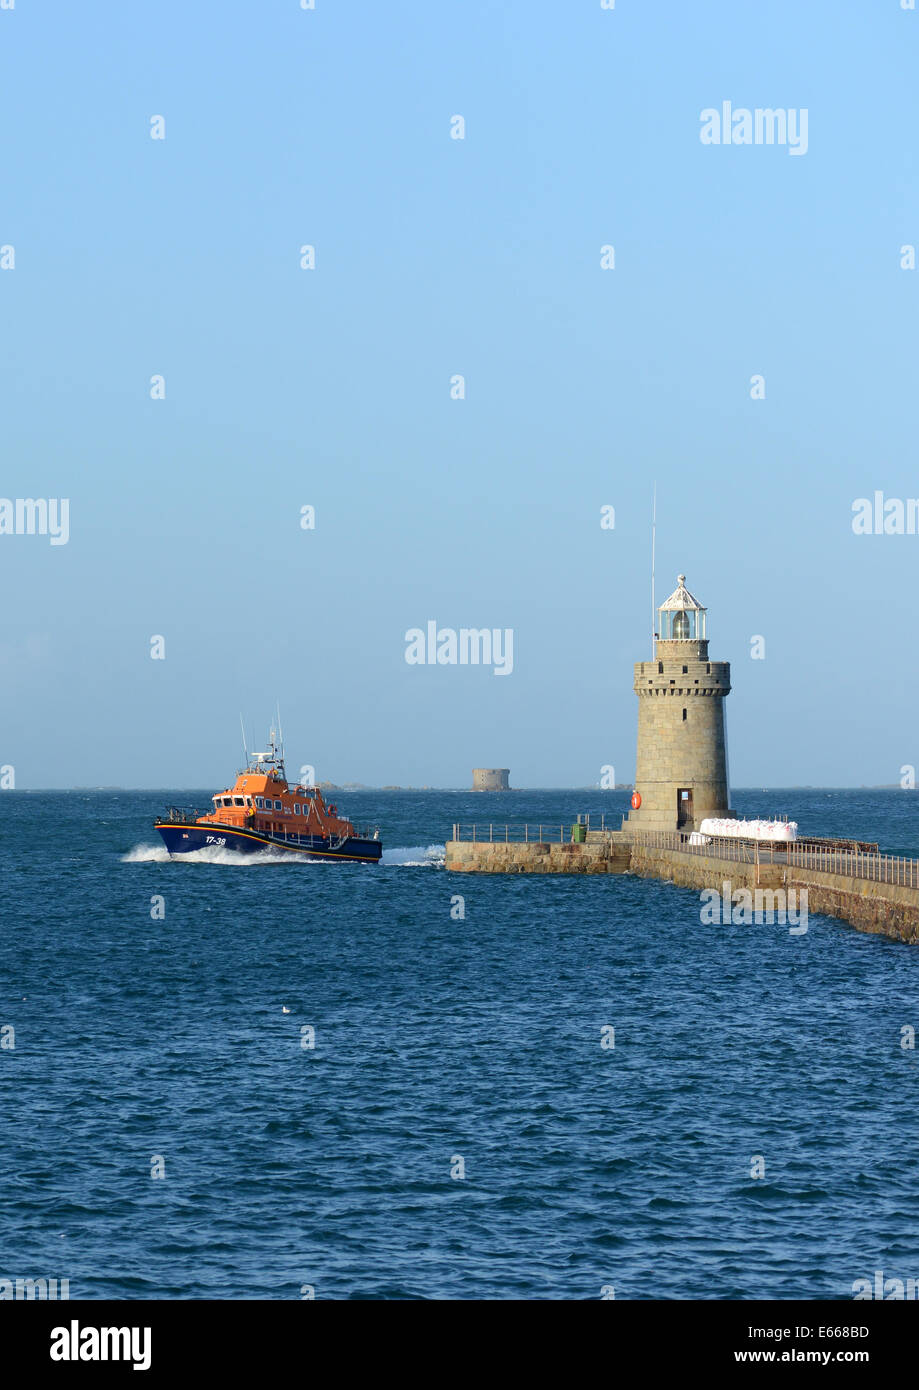 RNLI lifeboat returning St Peter Port, Guernsey, Channel Islands following a distress call - Stock Image